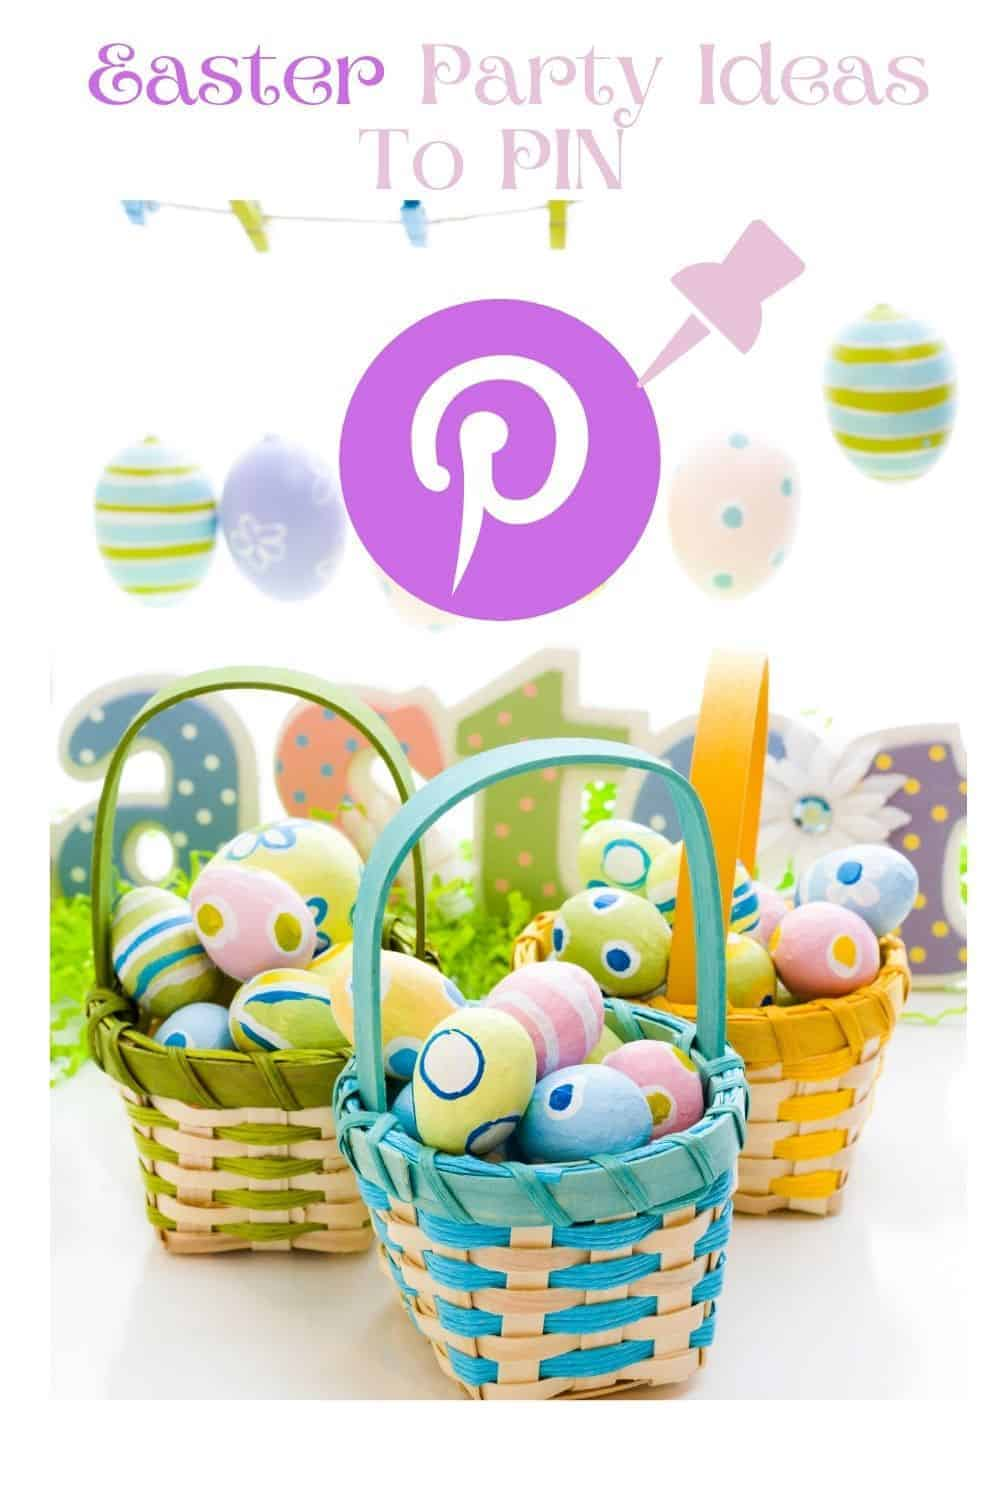 Simple Easter Party Ideas Pinterest Link